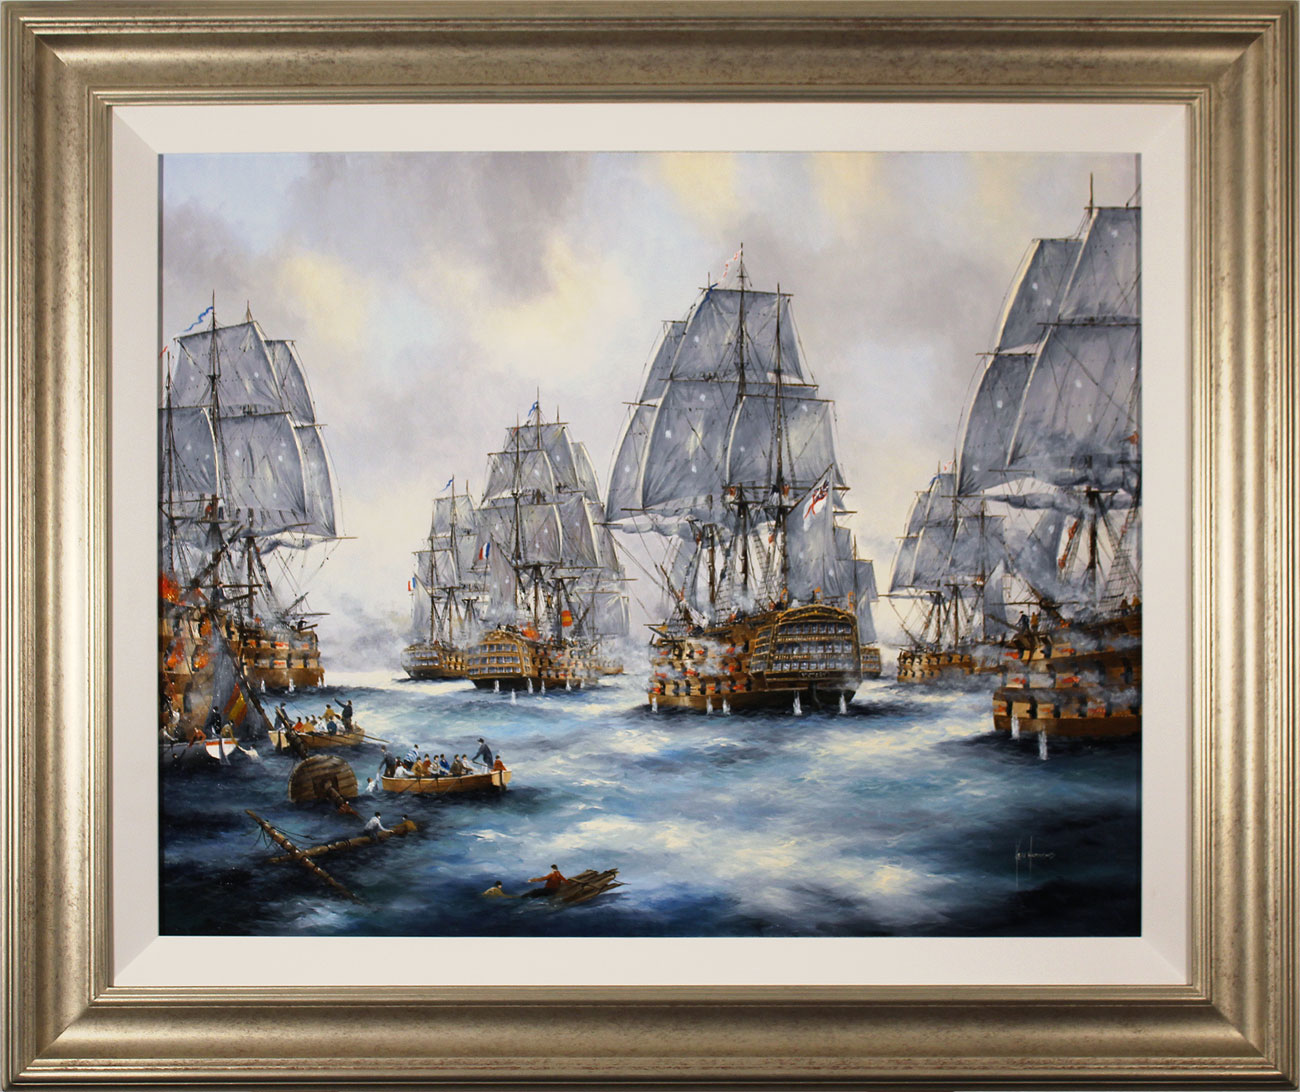 Ken Hammond, Original oil painting on canvas, Battle of Trafalgar. Click to enlarge